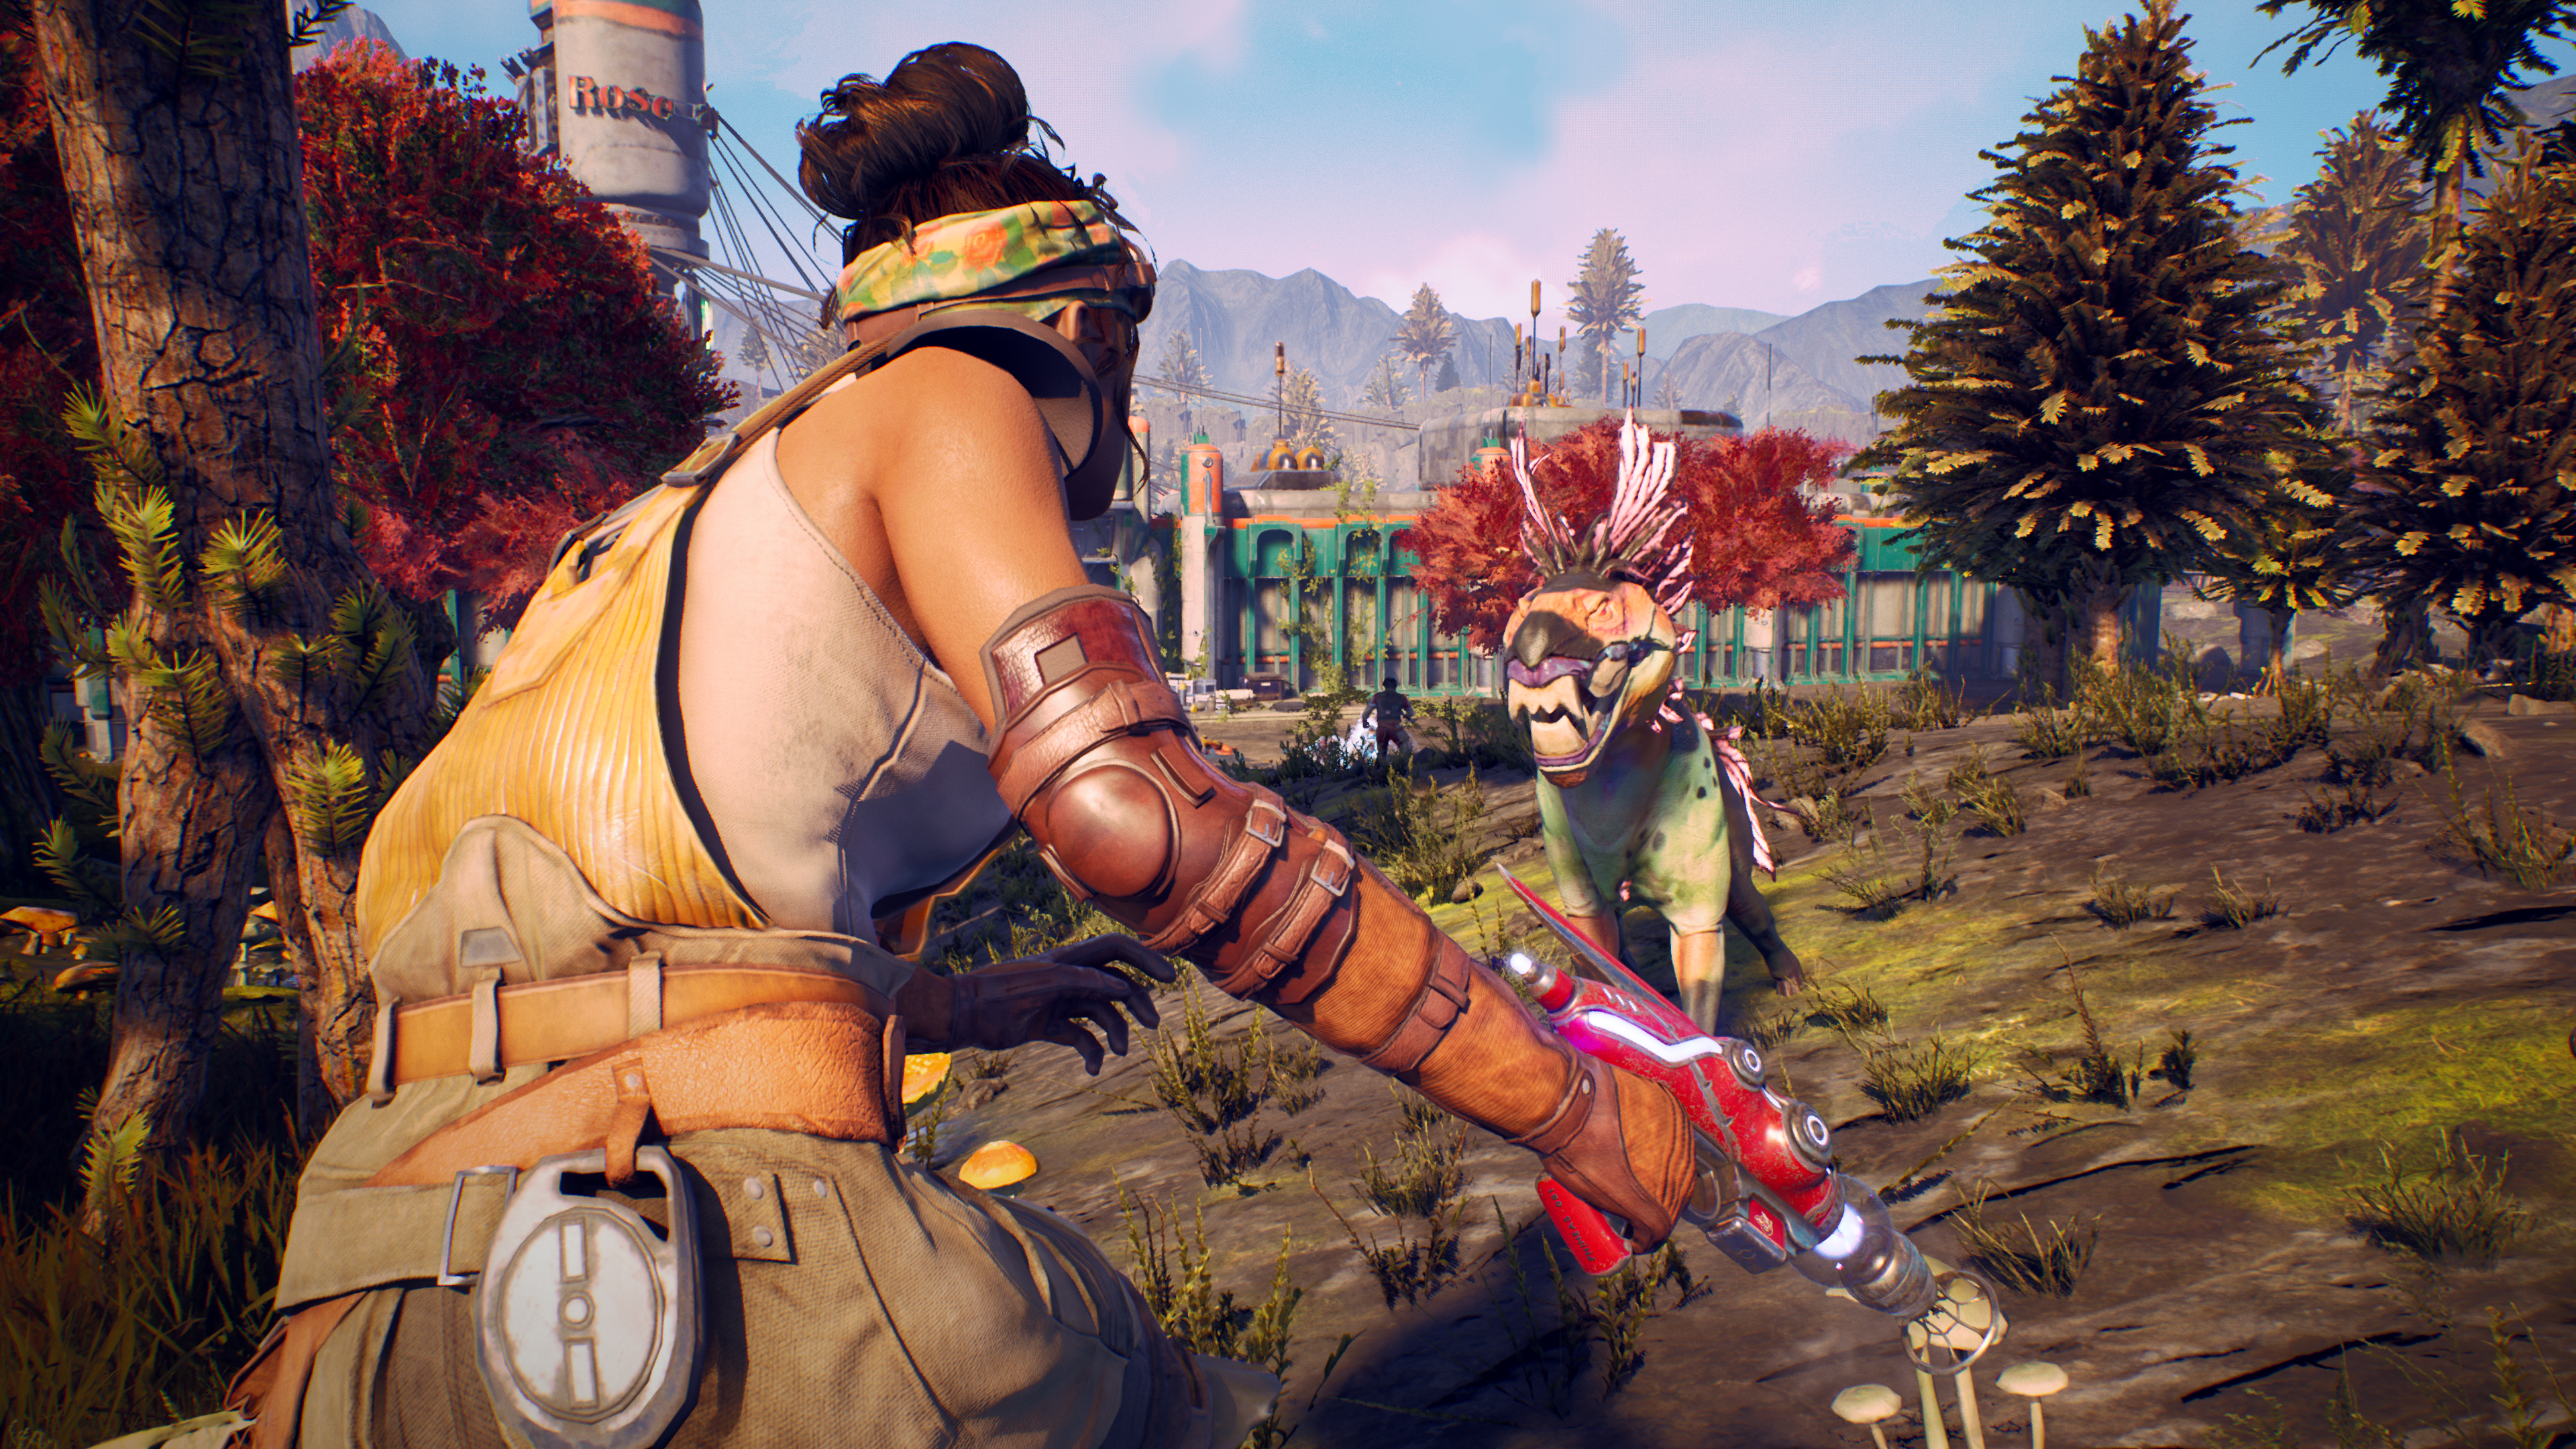 Microsoft sees exclusive franchise potential in The Outer Worlds - VG247